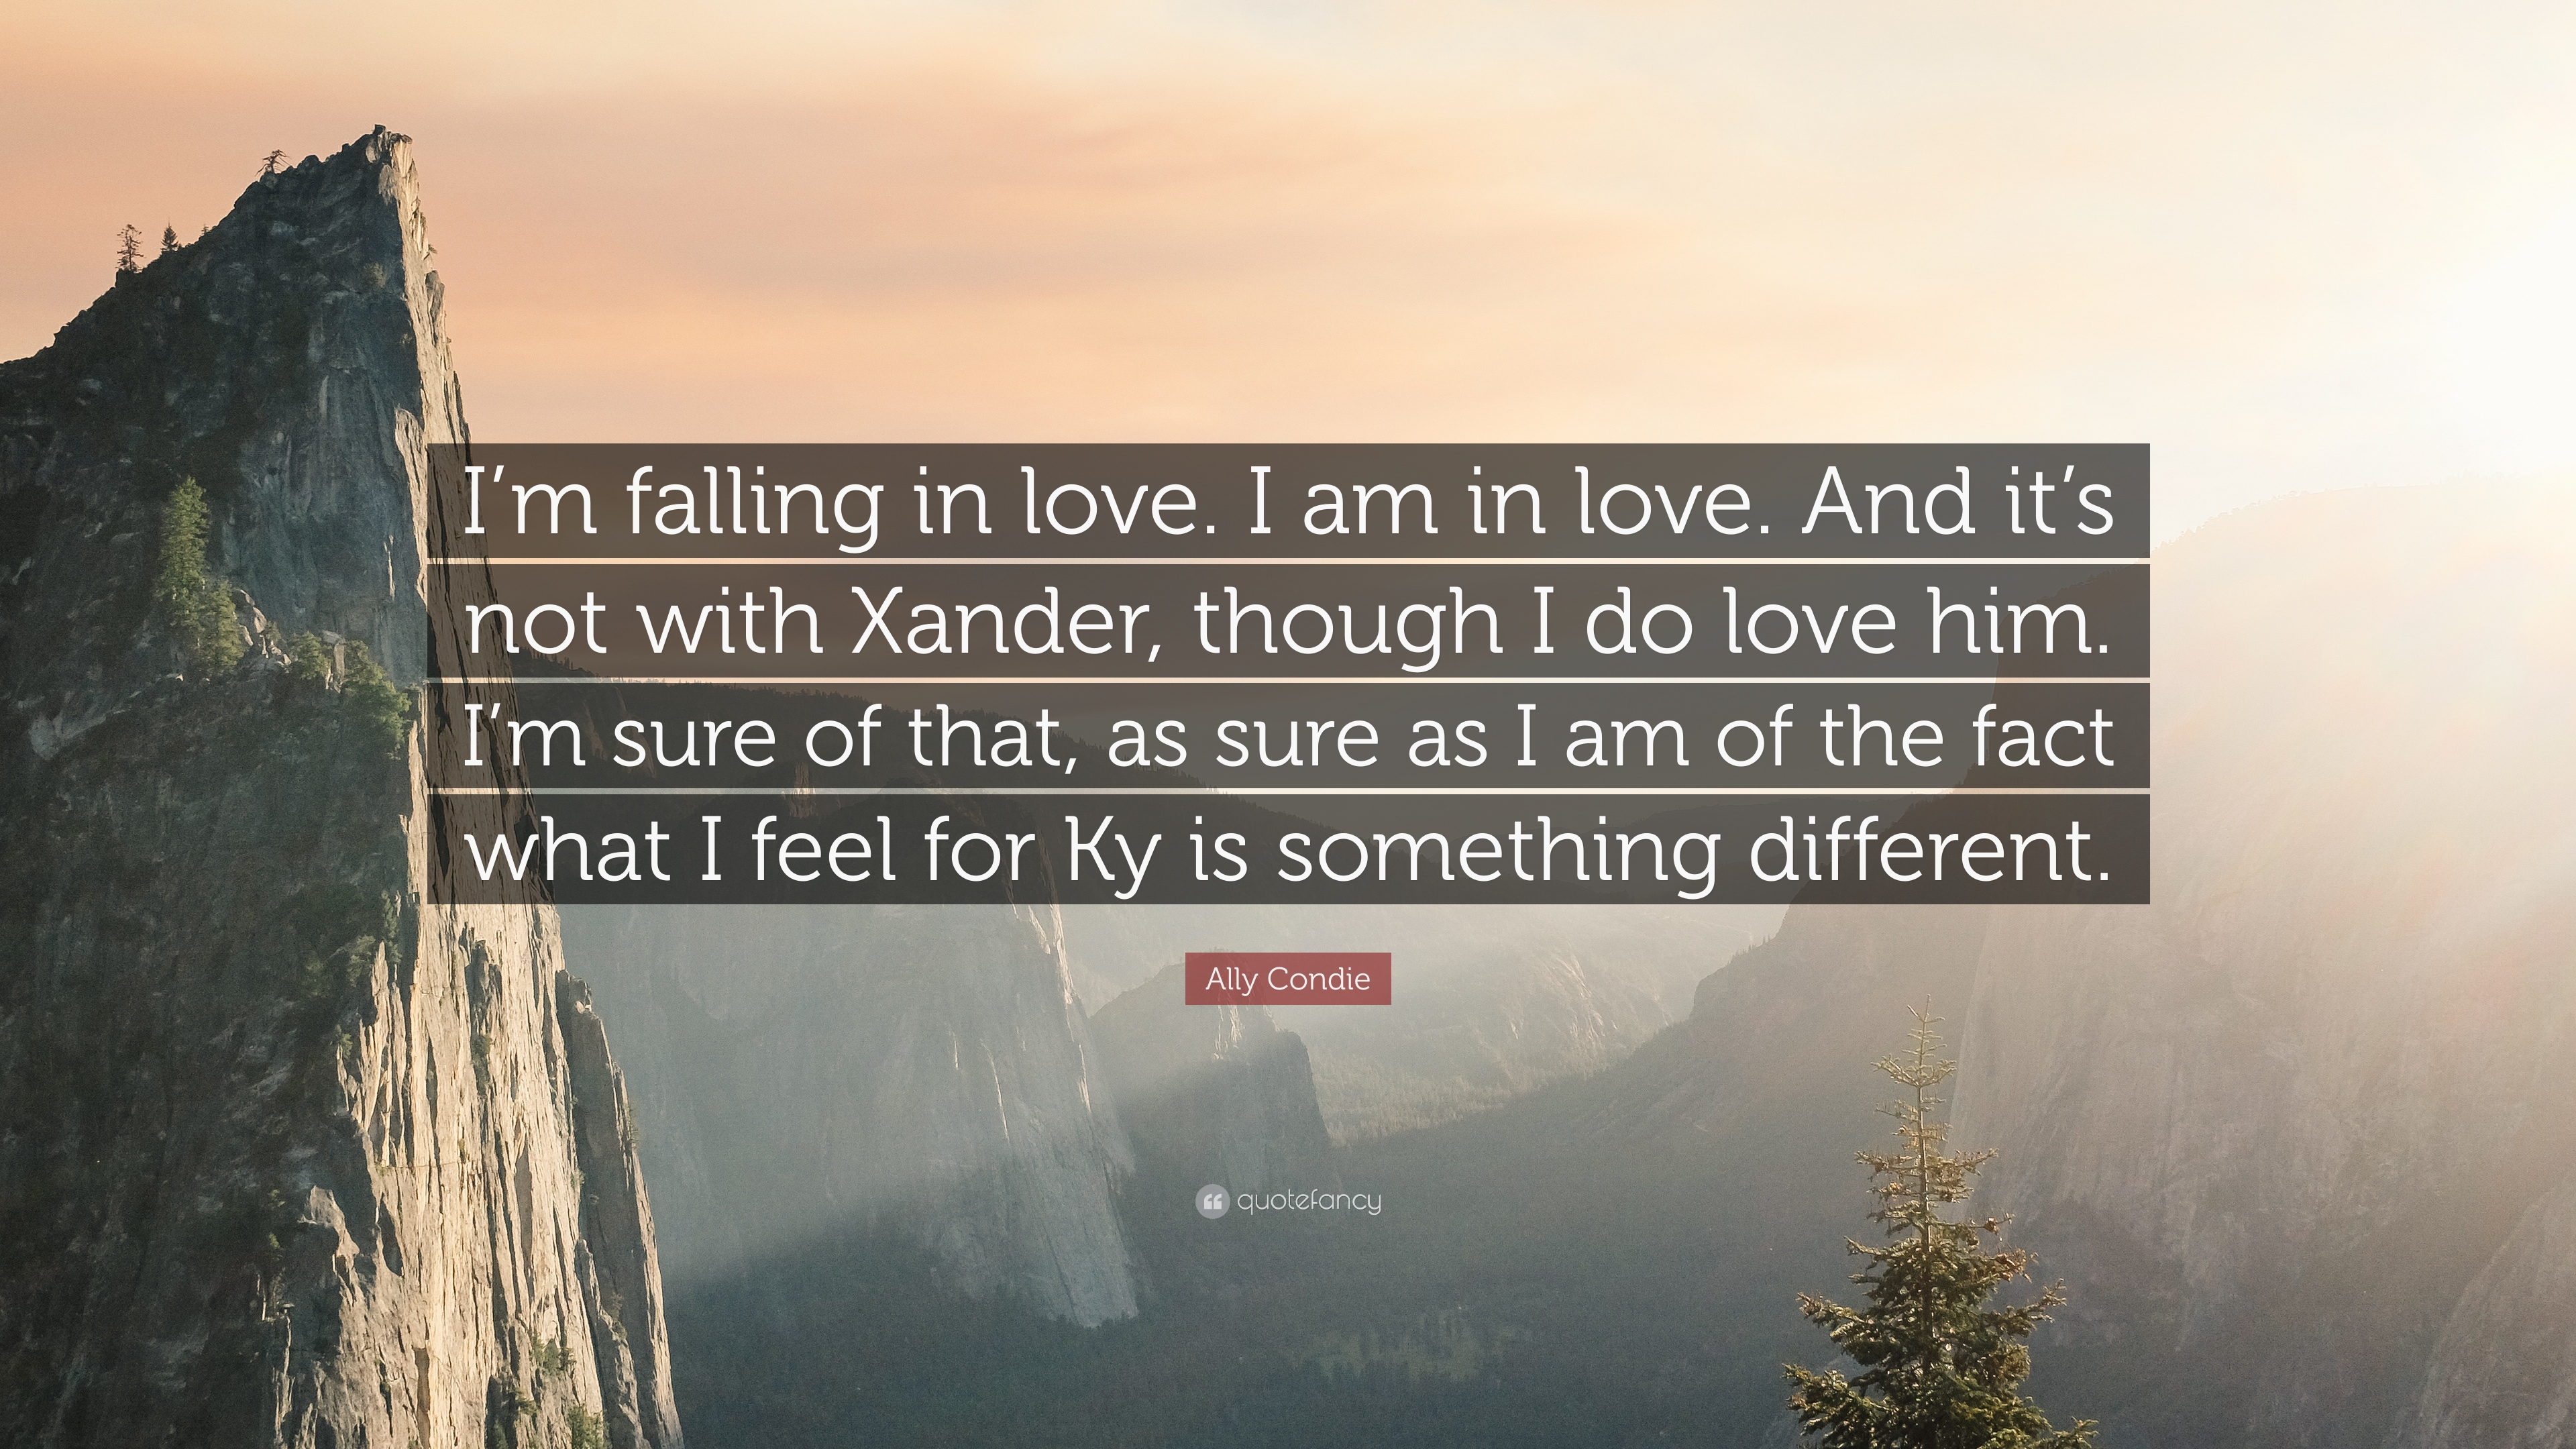 To acquire Love in Fall not in line pictures trends